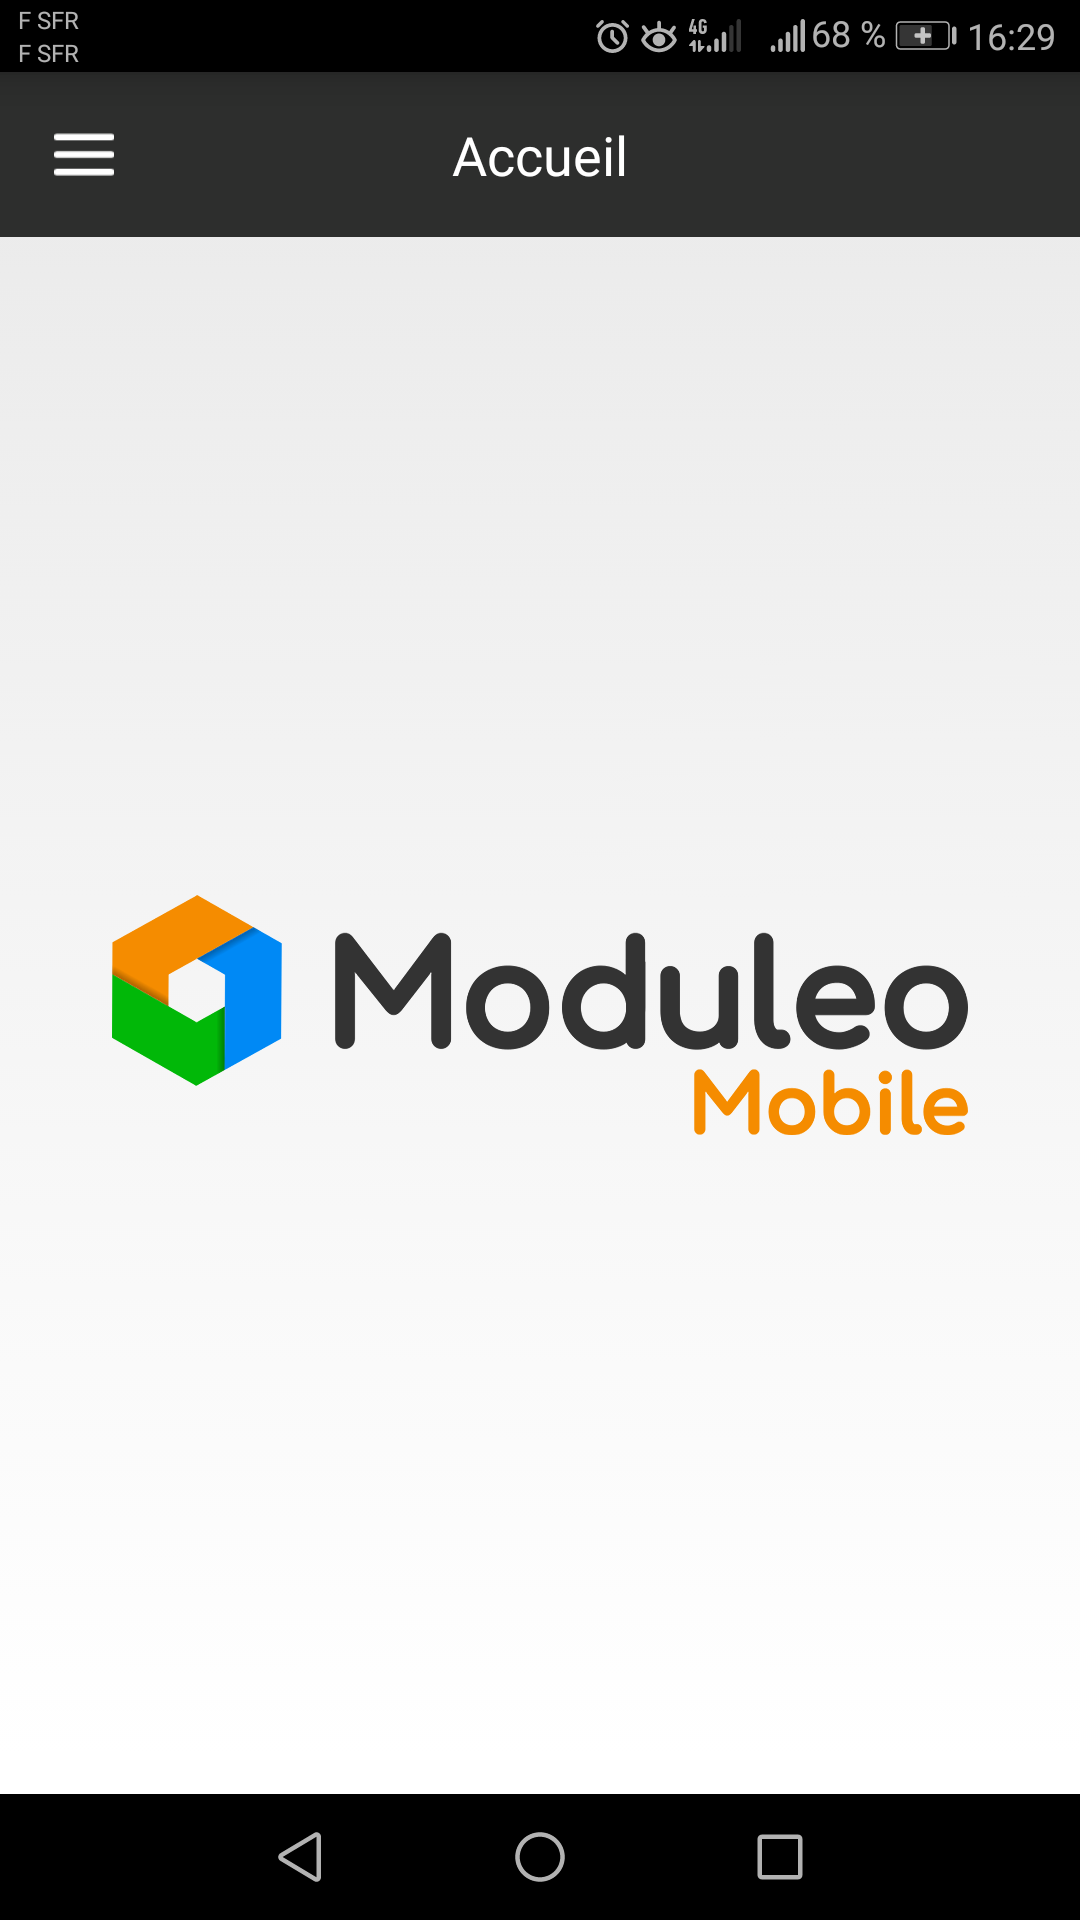 Moduleo Mobile 1.png